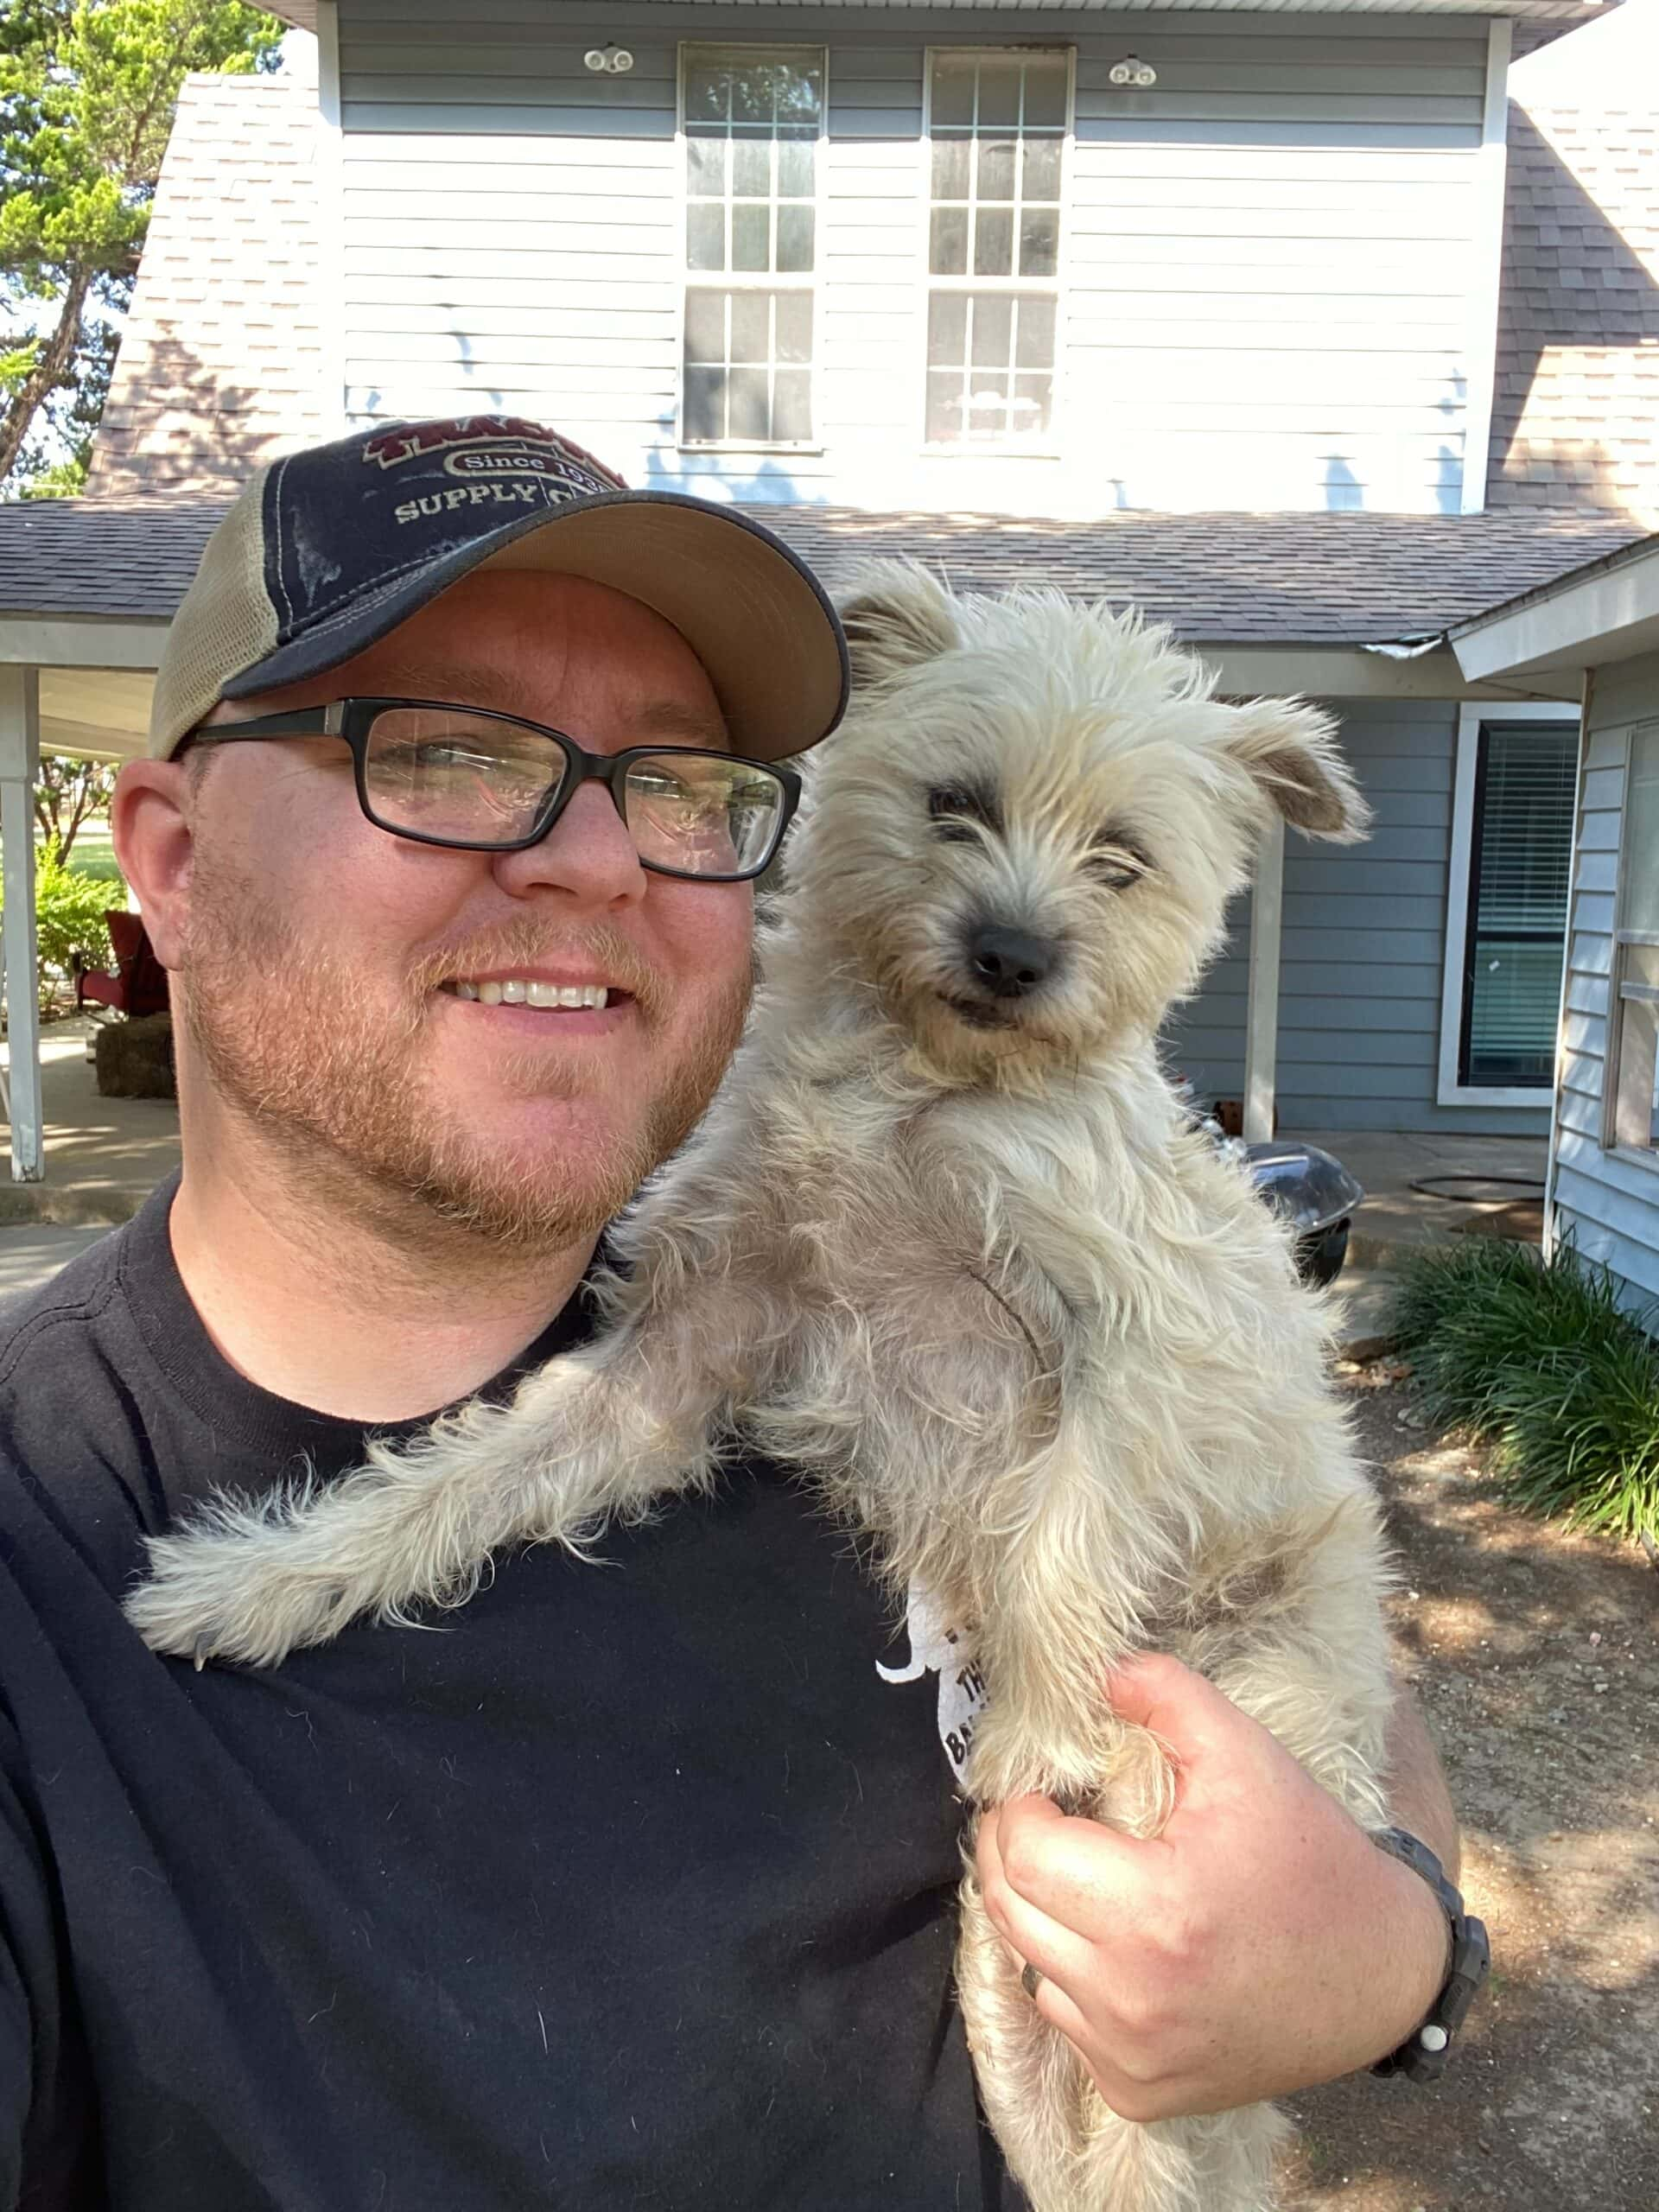 Matt Morris holding dog